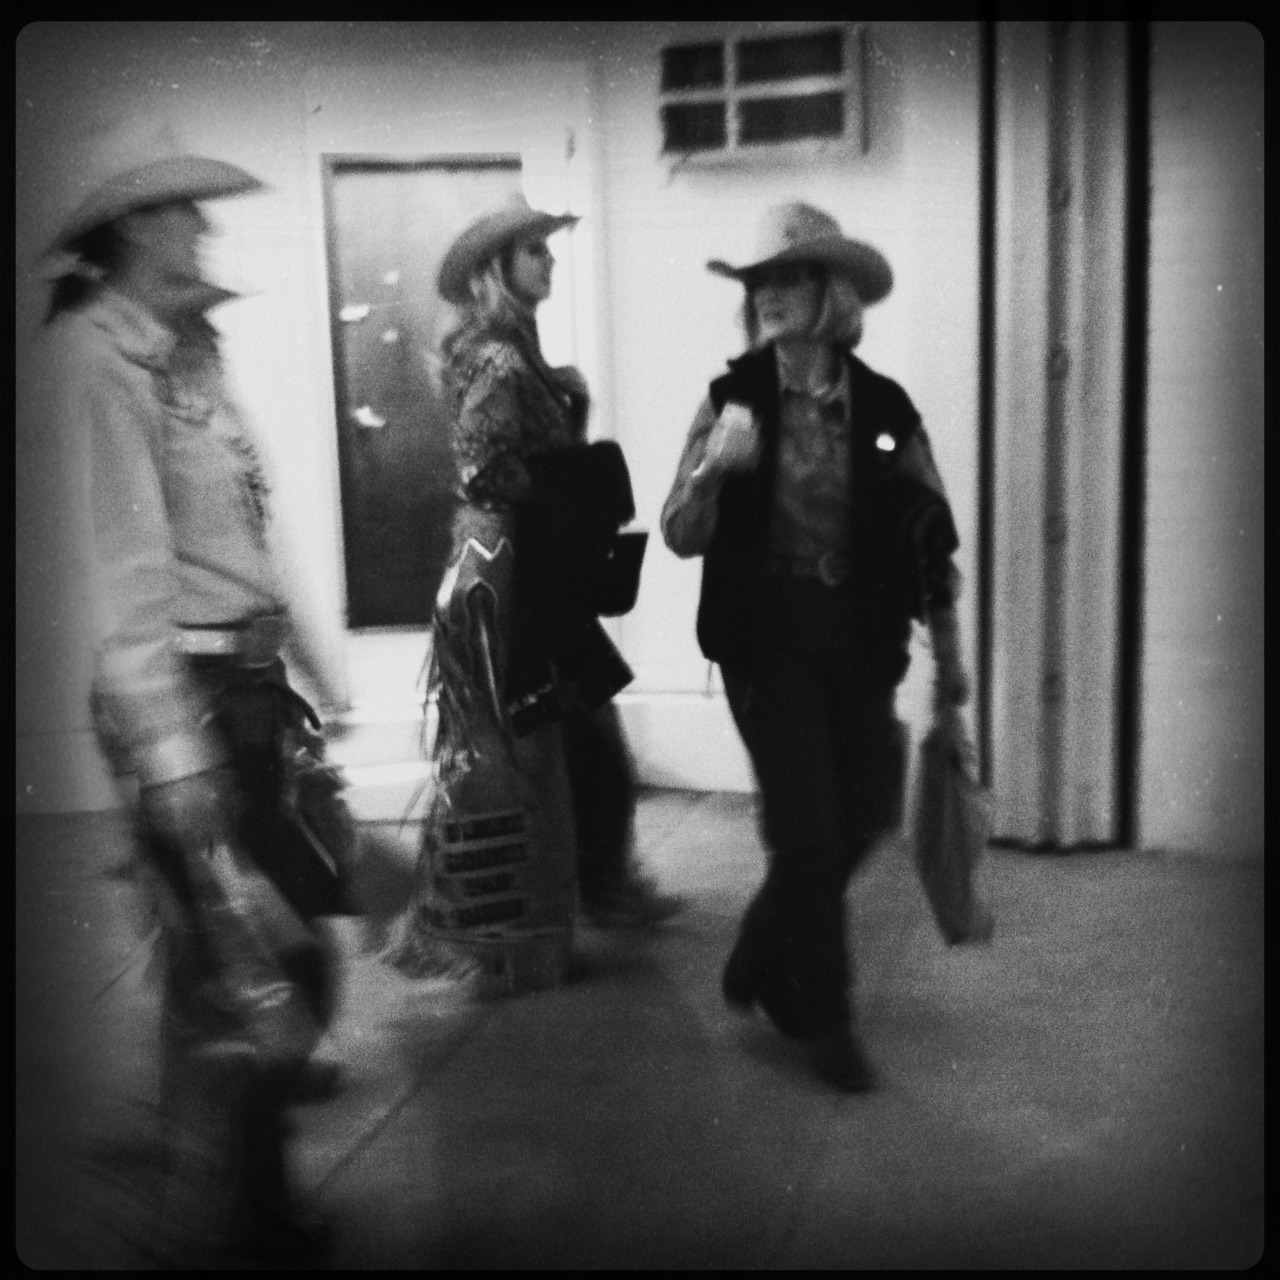 Rodeo Queens Taken with Hipstamatic, Tejas Lens, Rock BW-11 Film, No Flash.